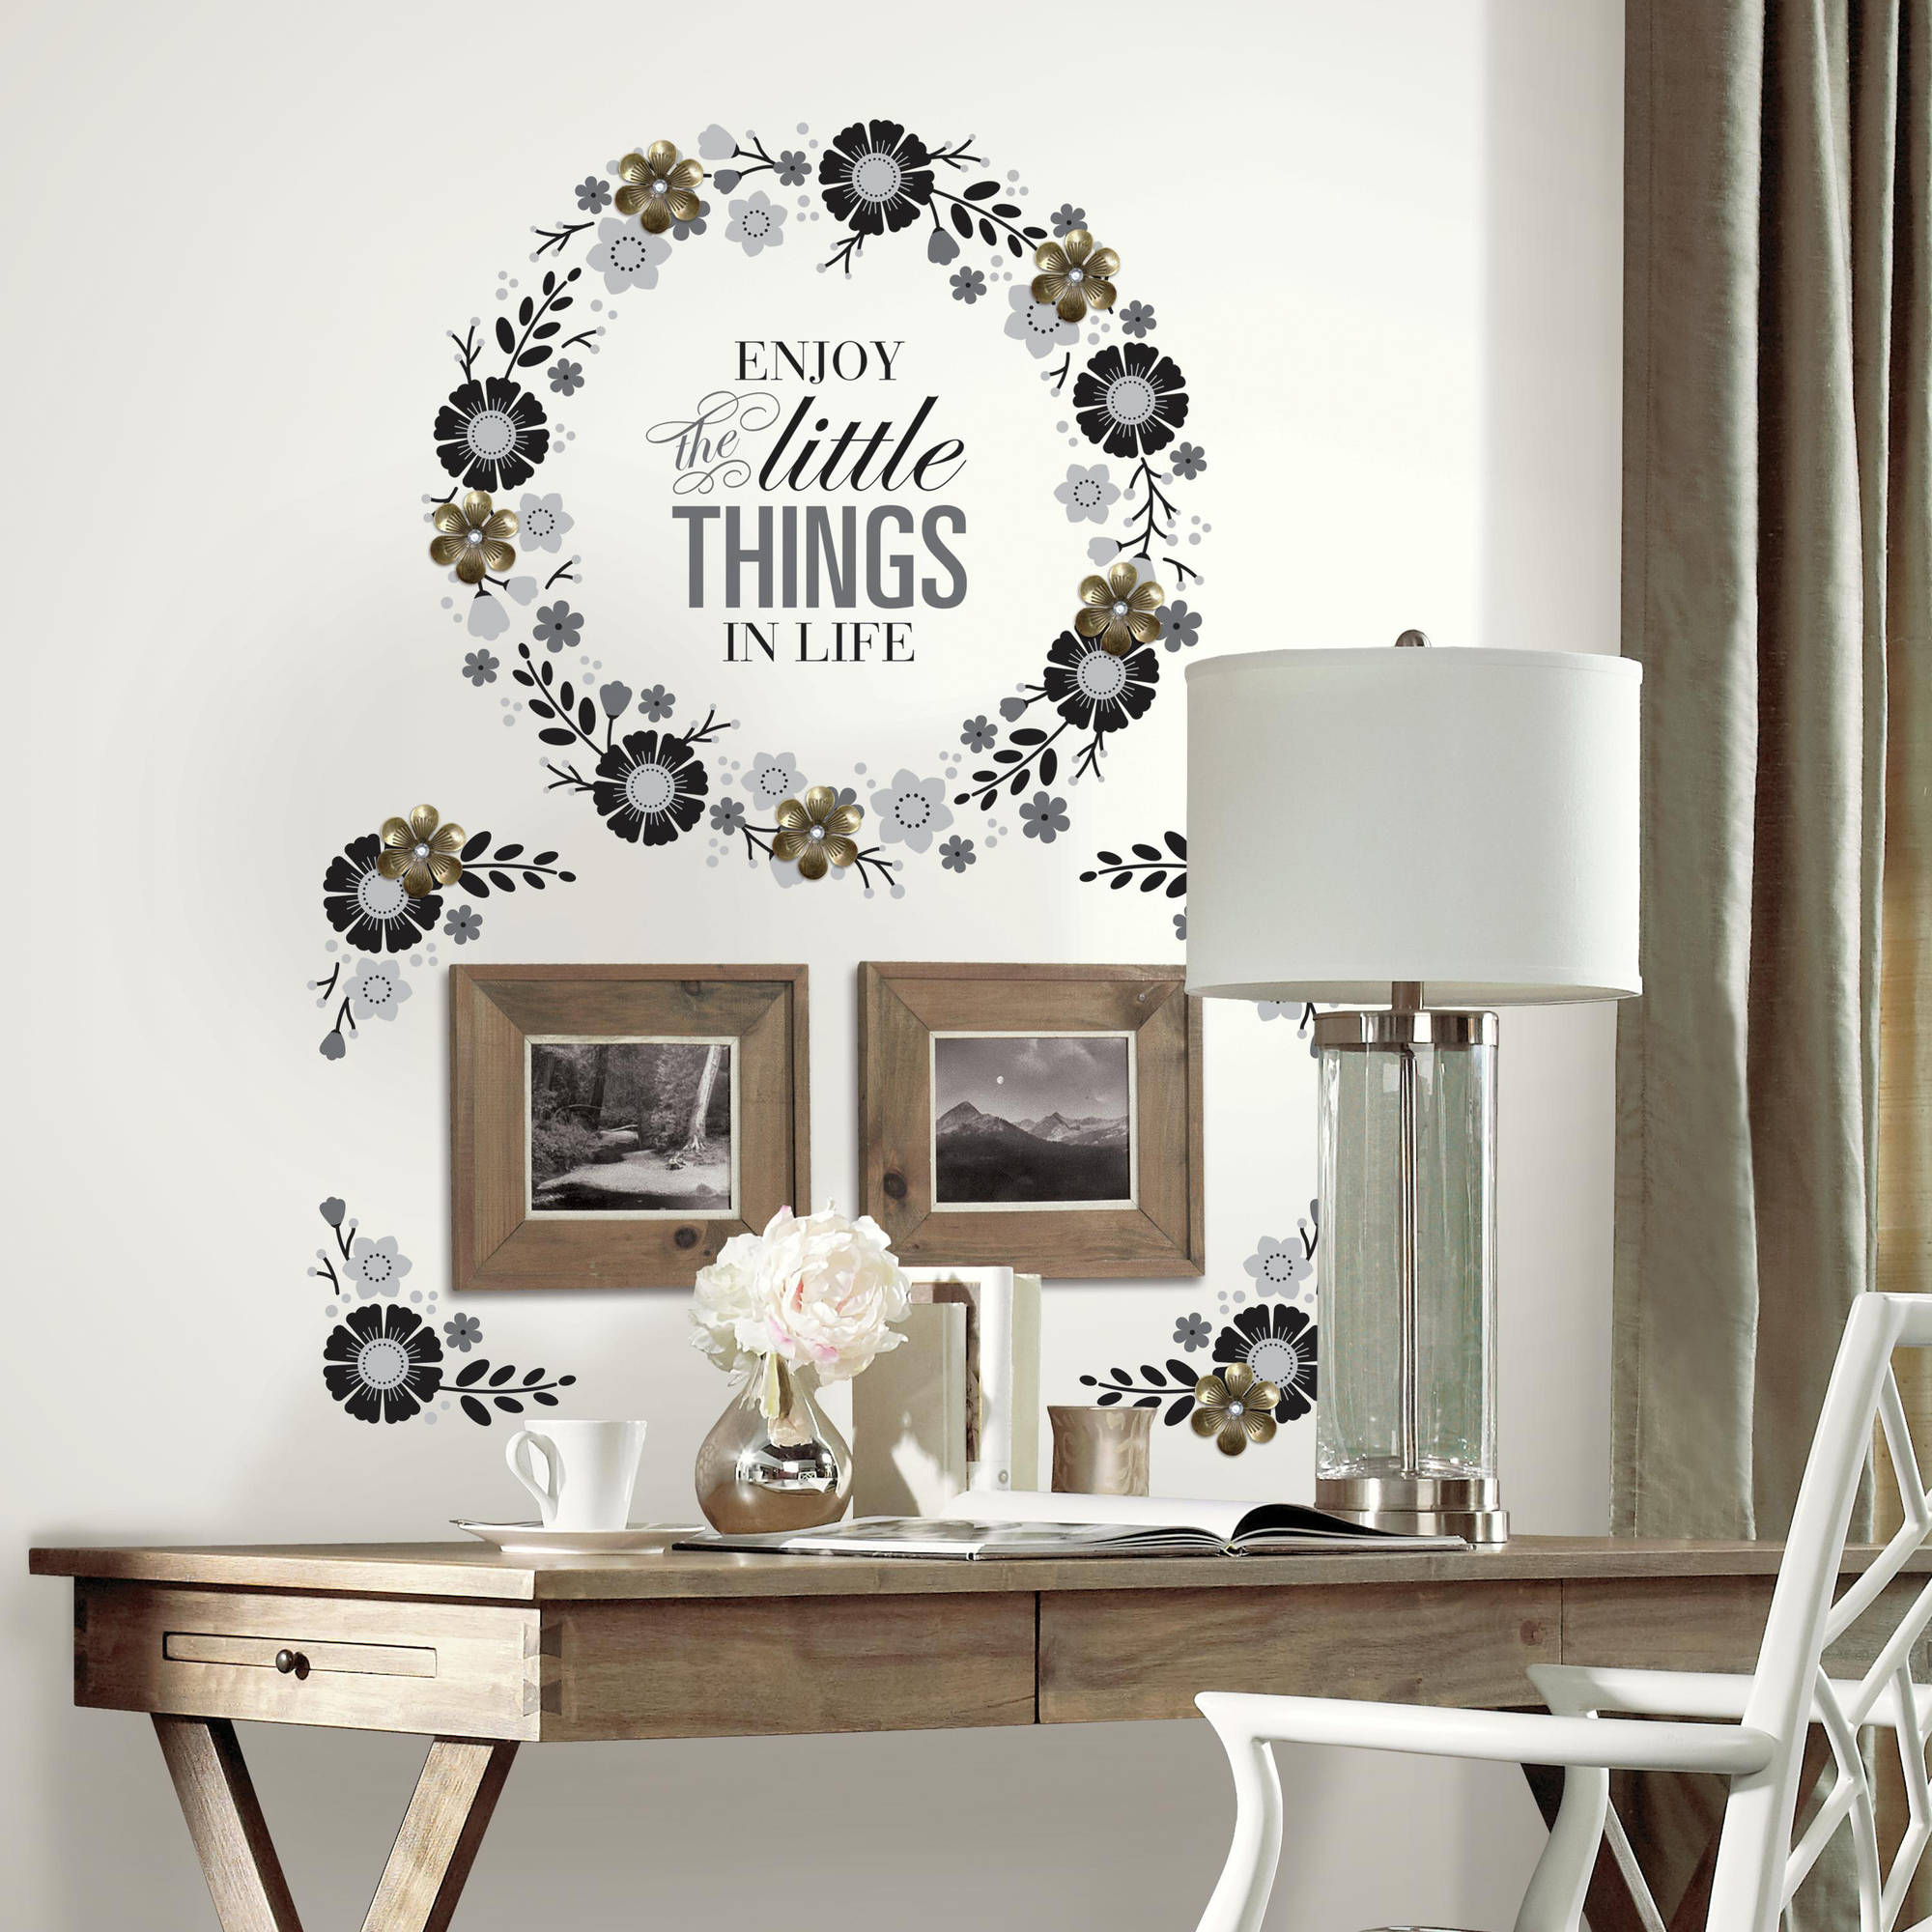 Roommates Floral Wreath Quote with Embellishments Peel and Stick Giant Wall Decals